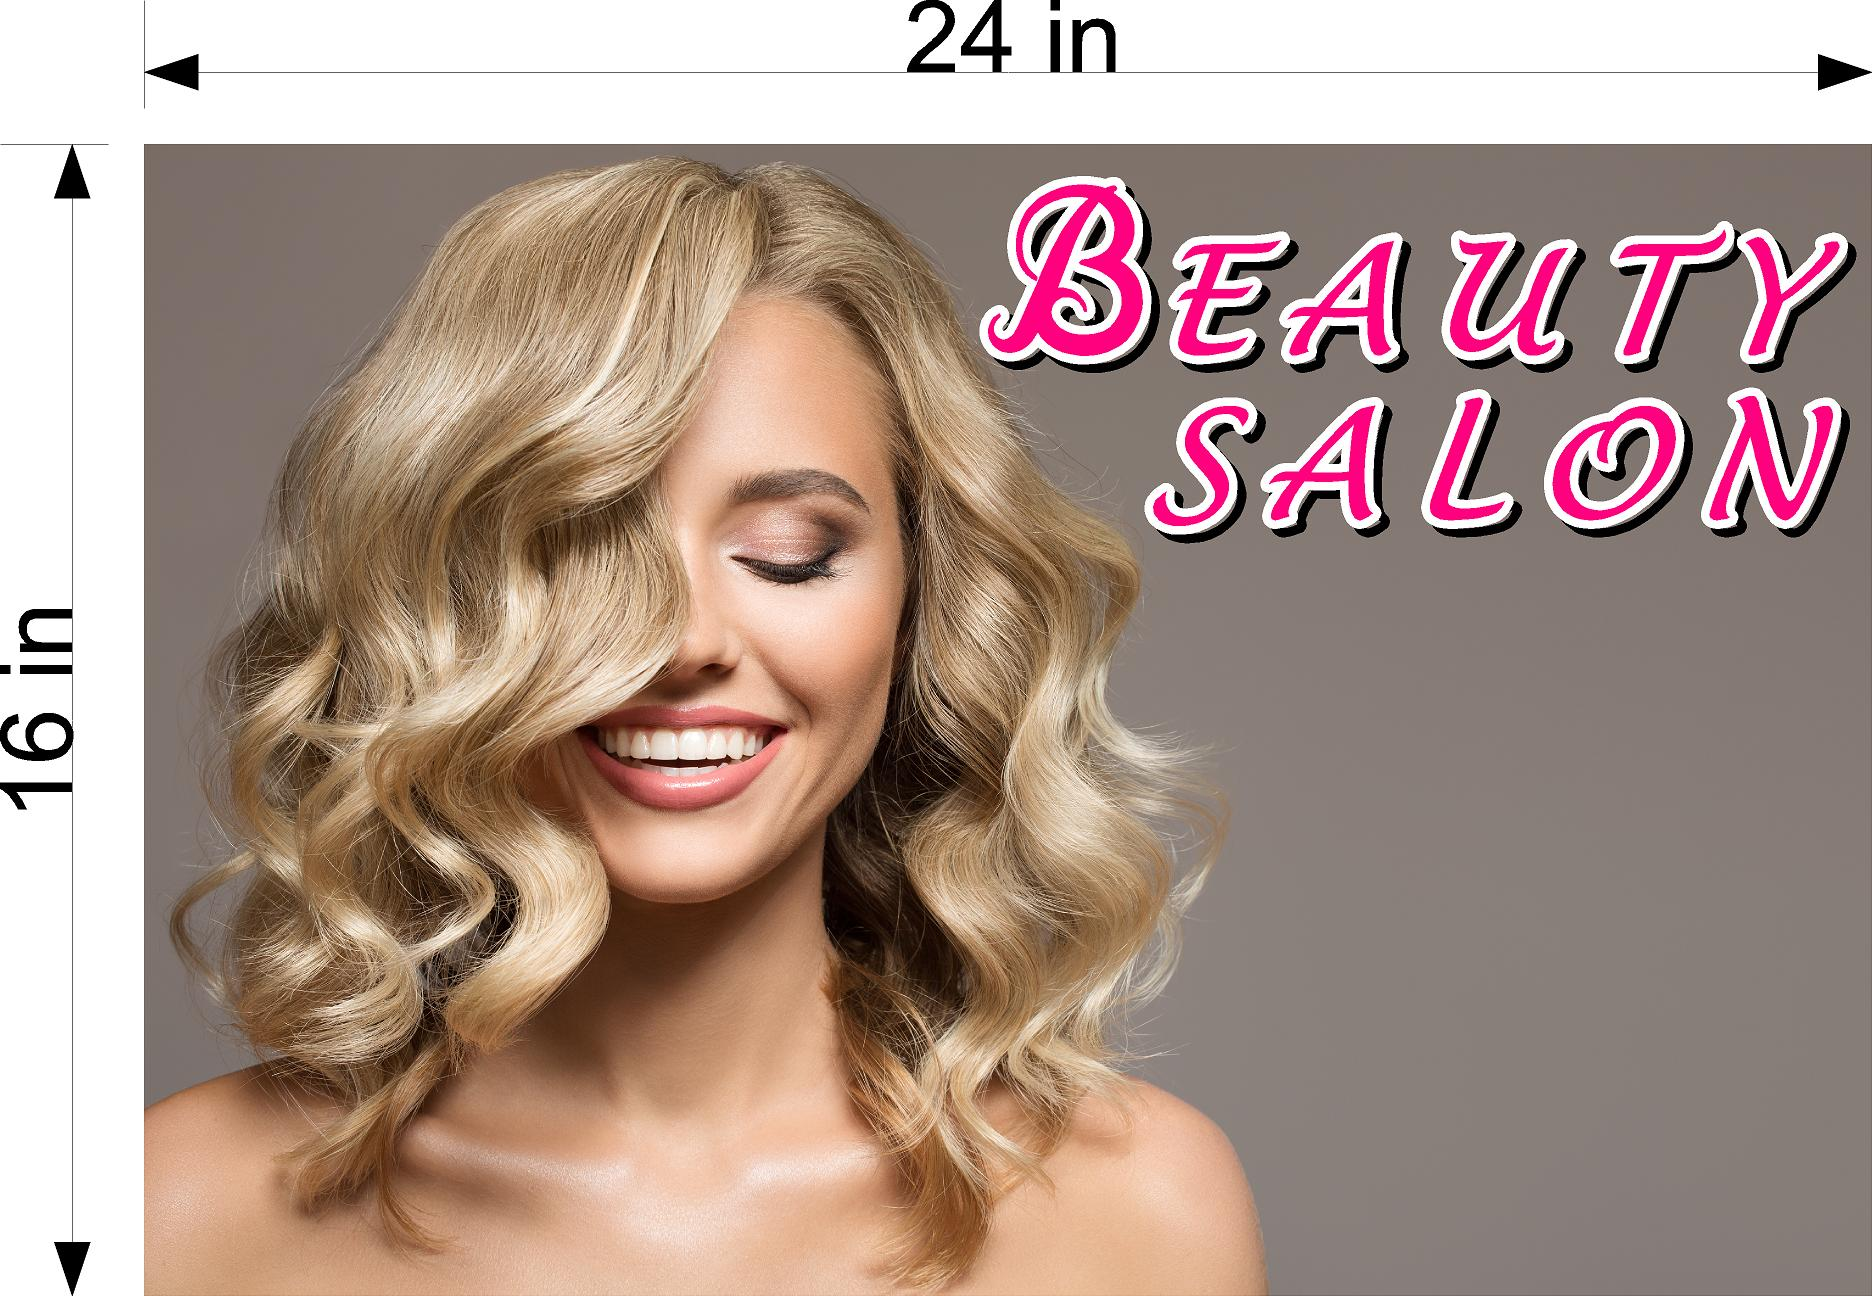 Hair Salon 10 Photo-Realistic Paper Poster Matte Interior Inside Sign Non-Laminated Horizontal